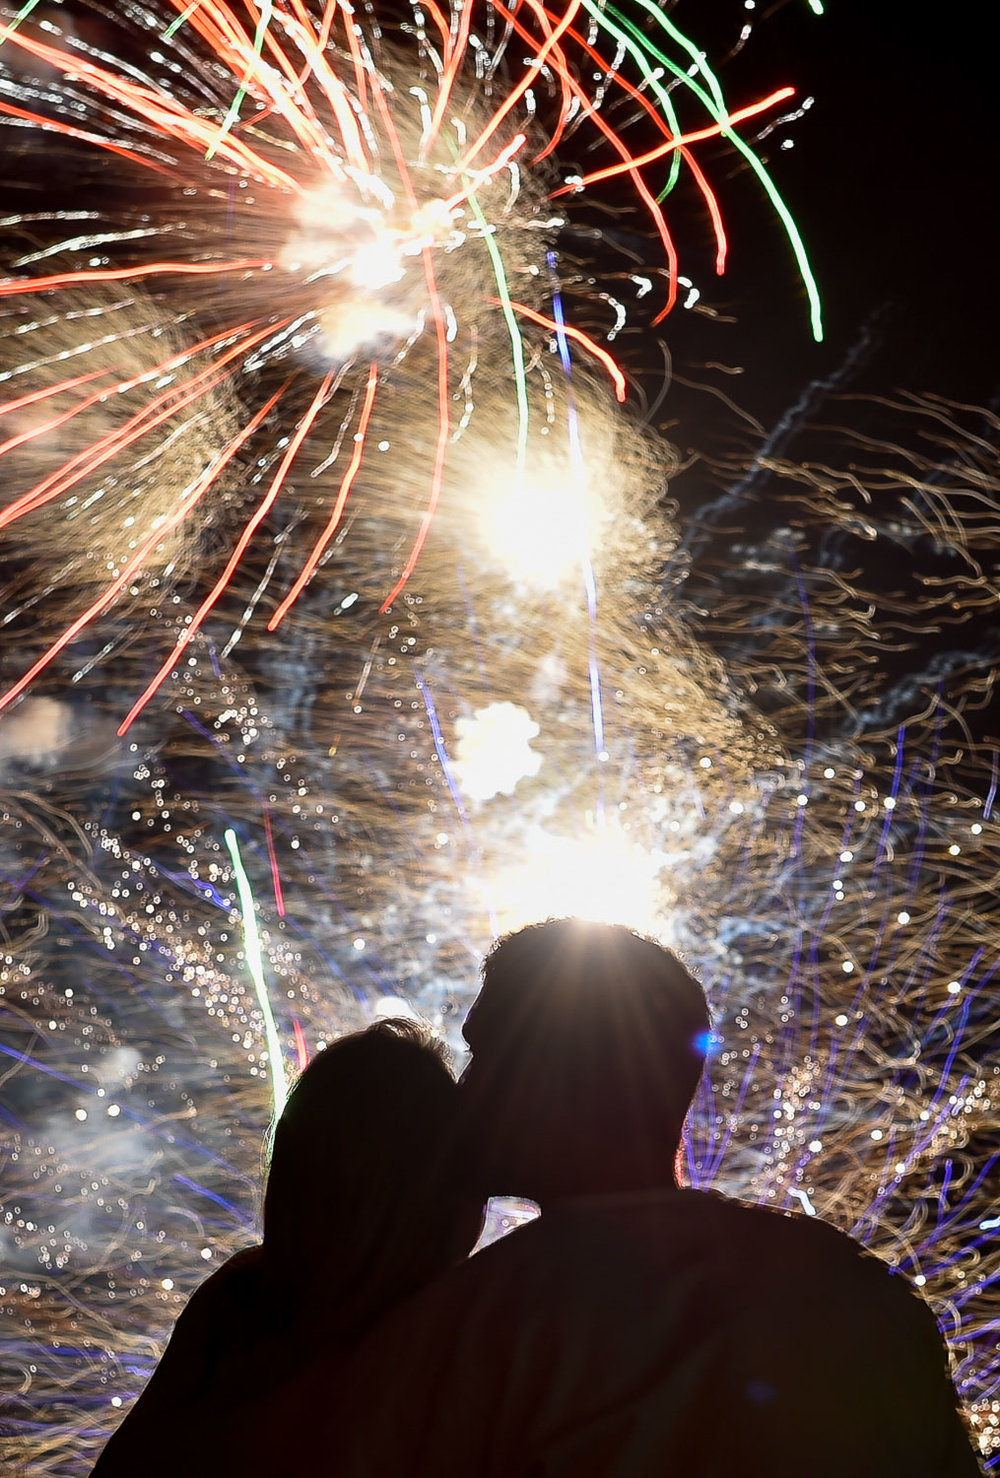 Nikon D4s, .8 sec @ f/9, ISO 100, 24-70mm  A couple shares a kiss as they watch the Independence Day Fireworks display at Trum Field in Somerville, Thursday, June 29, 2017. [Wicked Local Staff Photo / David Sokol]